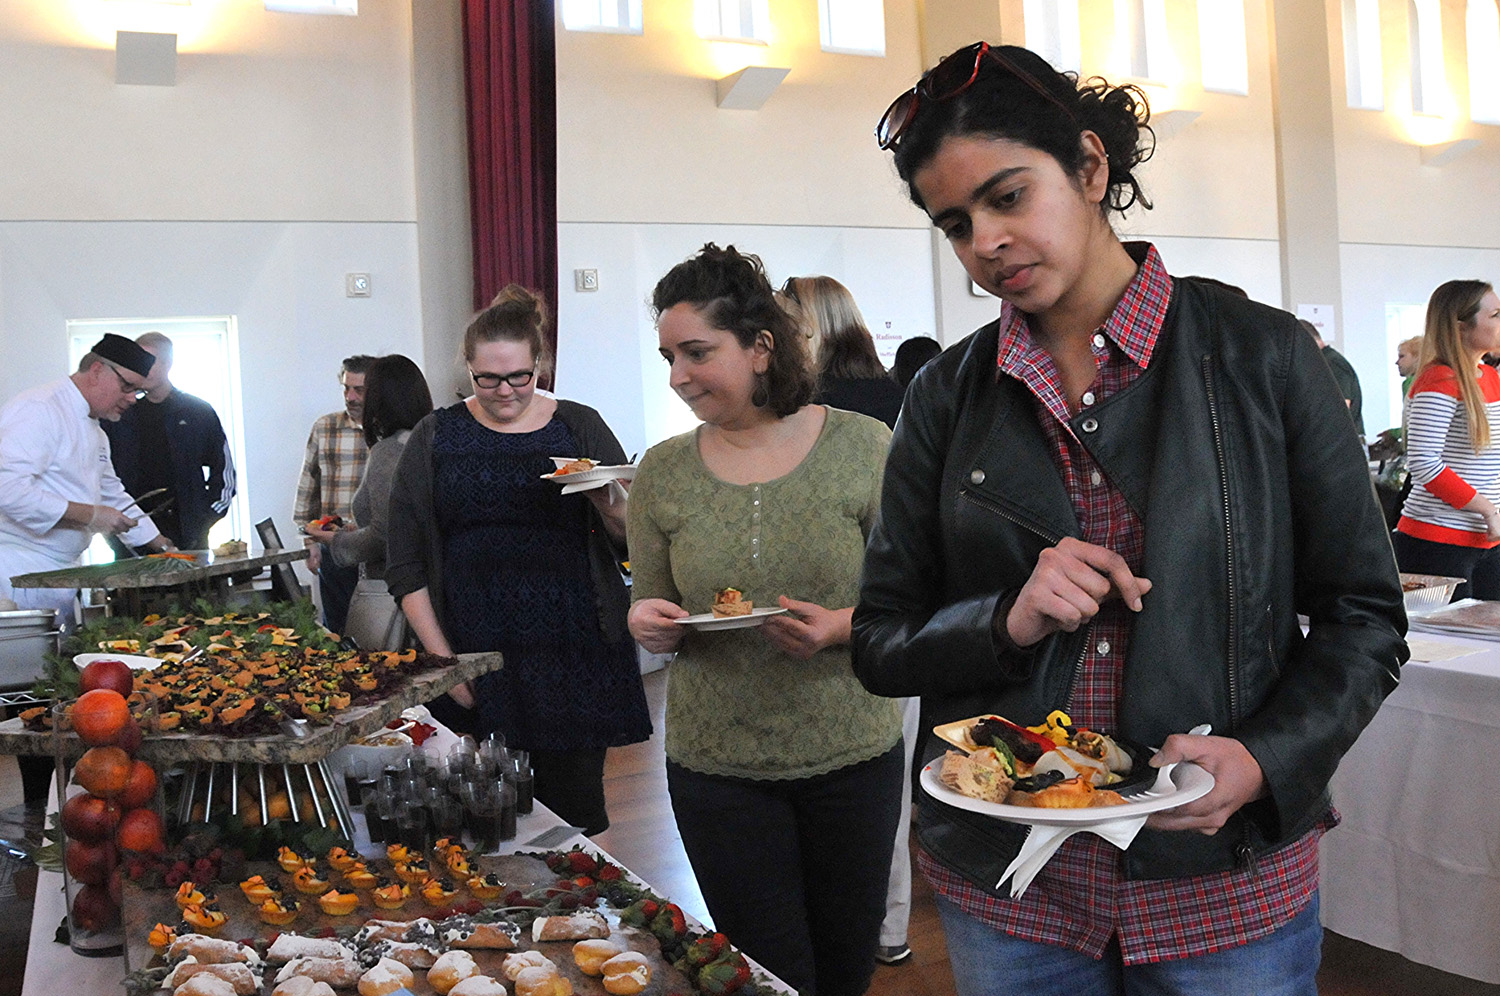 Natasha Kini, assistant director of online communications for University Relations, and others peruse the dessert spread.